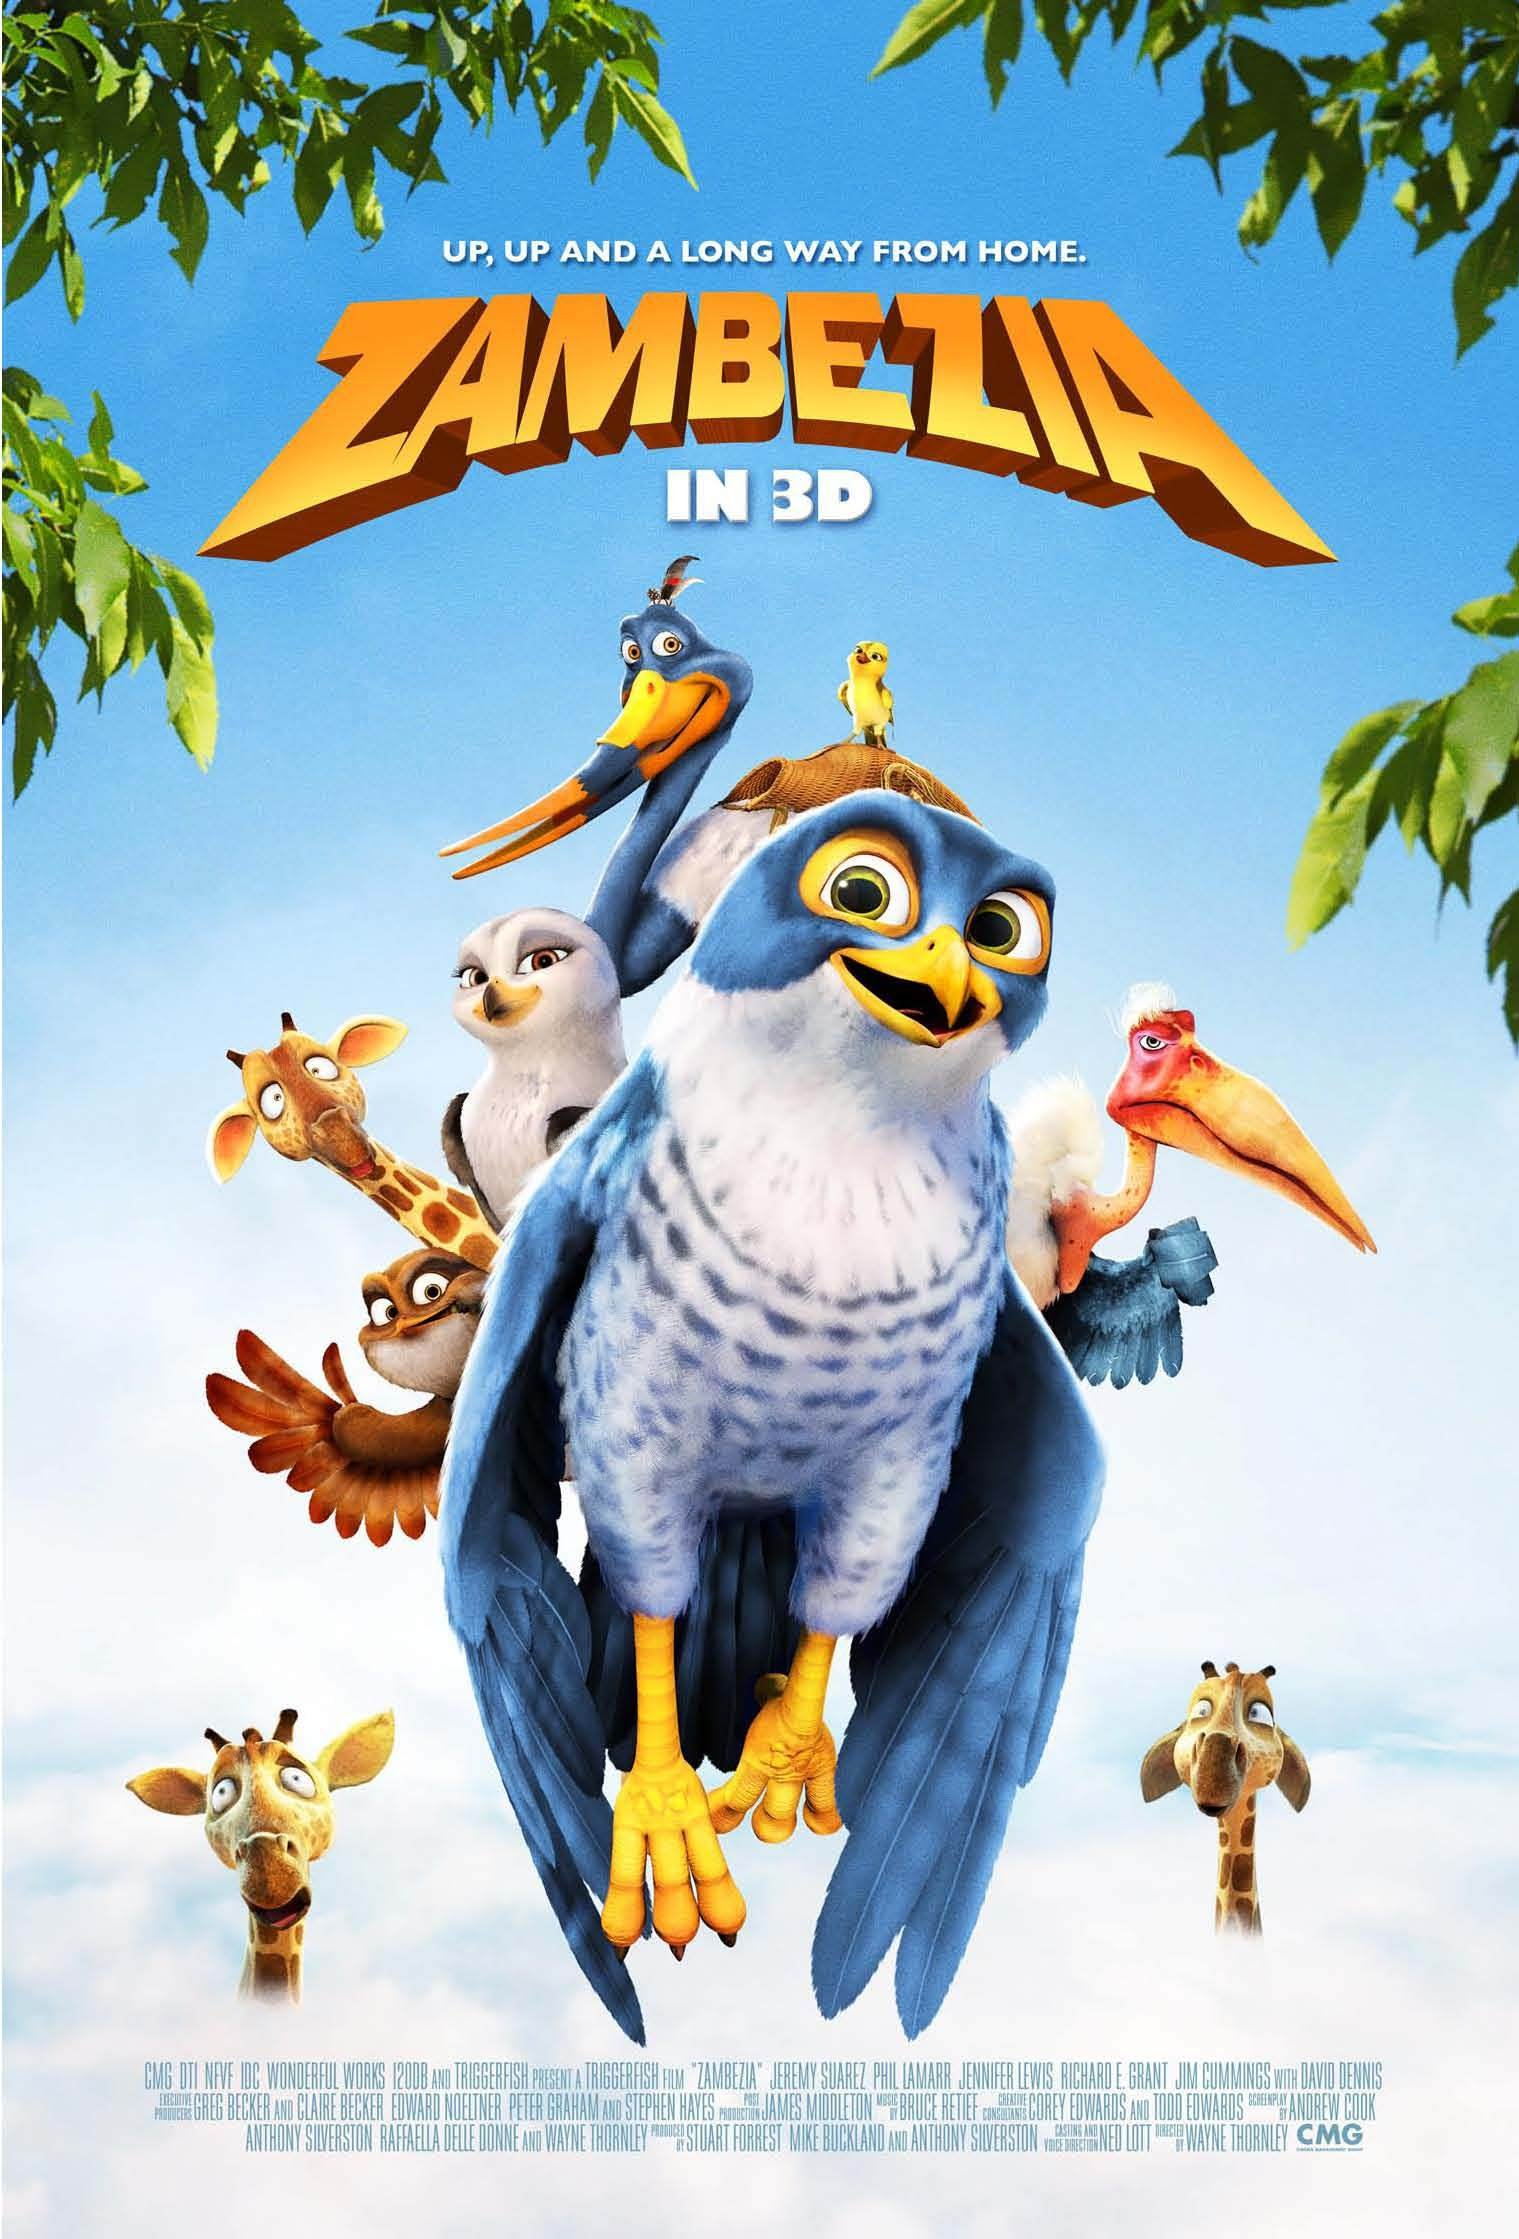 http://www.animationmagazine.net/wordpress/wp-content/uploads/zambezia-poster.jpg